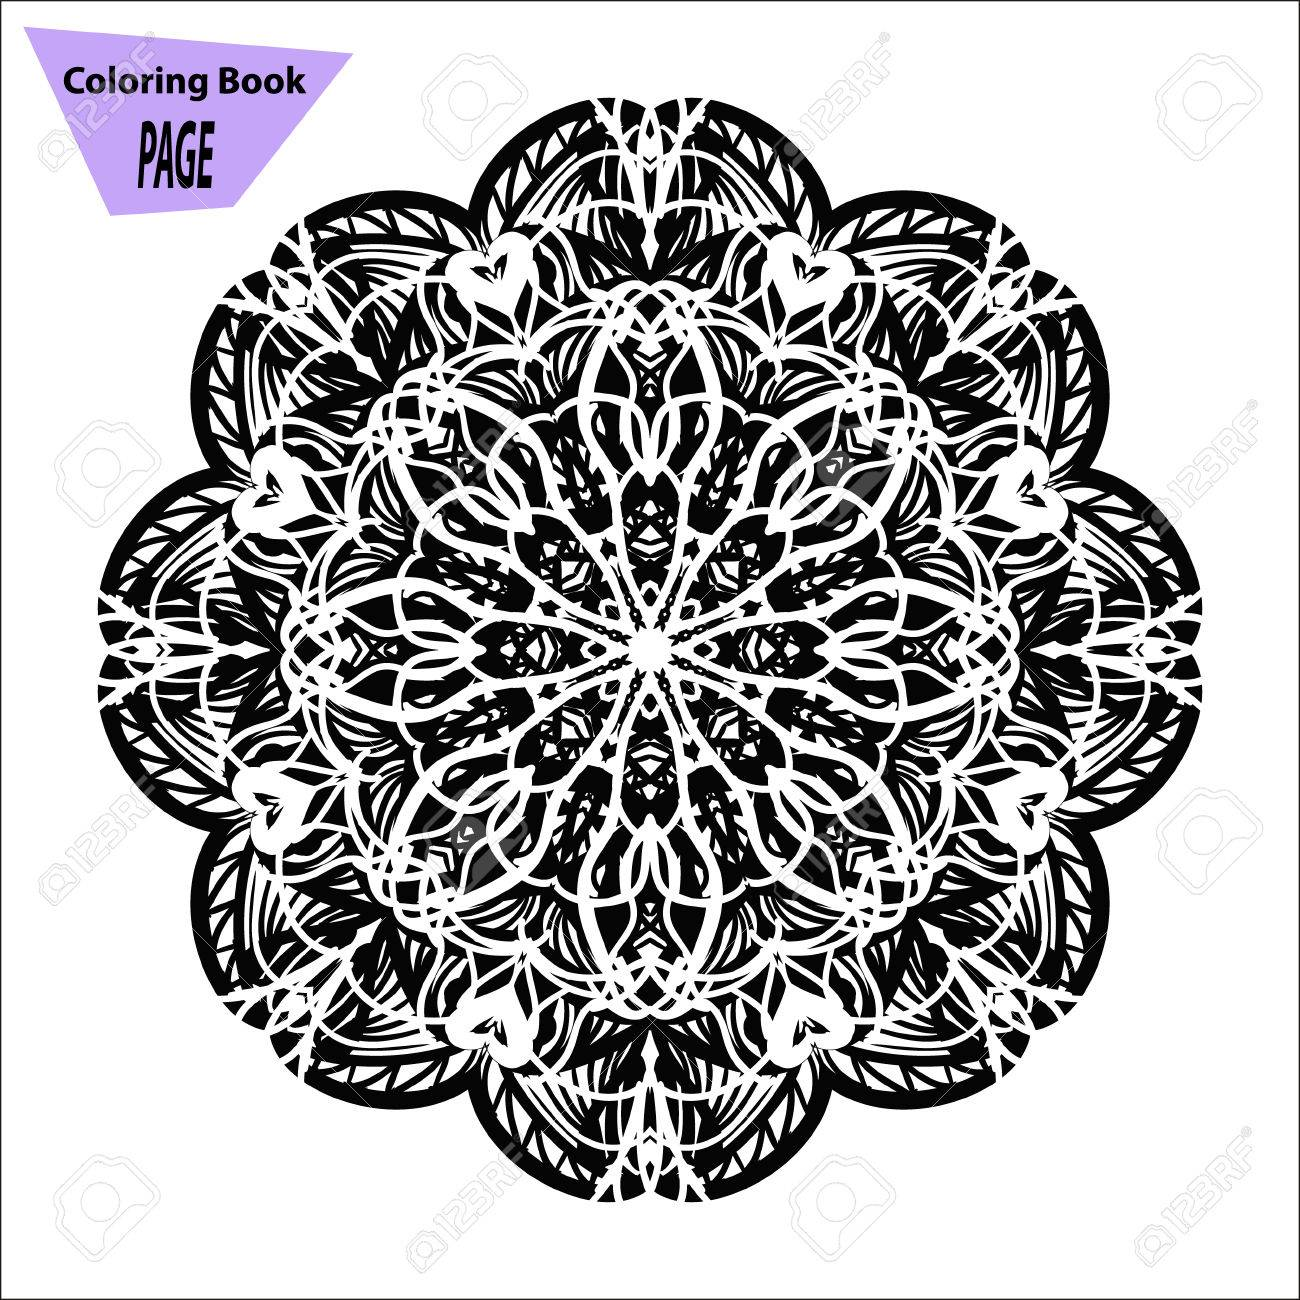 Mandala Coloring Page Vintage Decorative Elements Oriental Royalty Free Cliparts Vectors And Stock Illustration Image 71667000